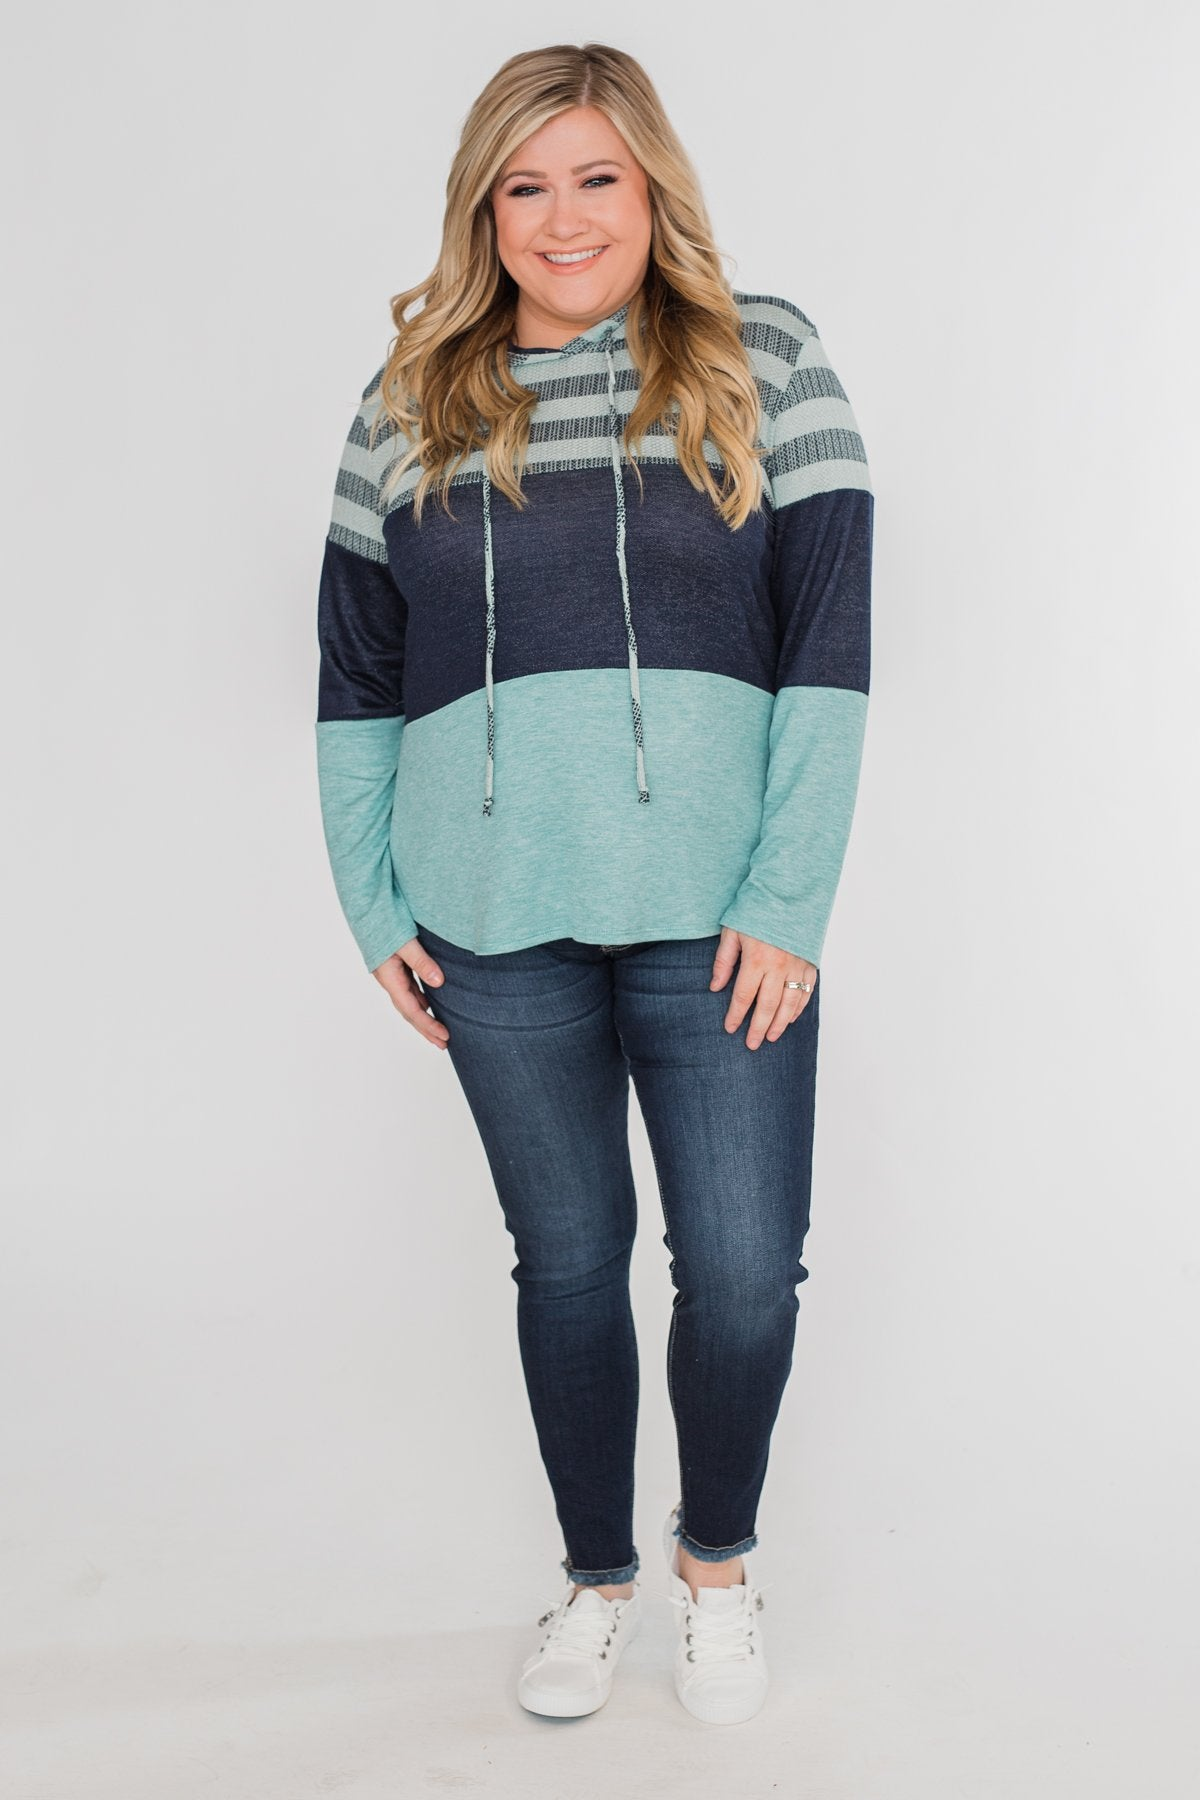 Speak to Me Color Block Drawstring Hoodie- Mint Blue